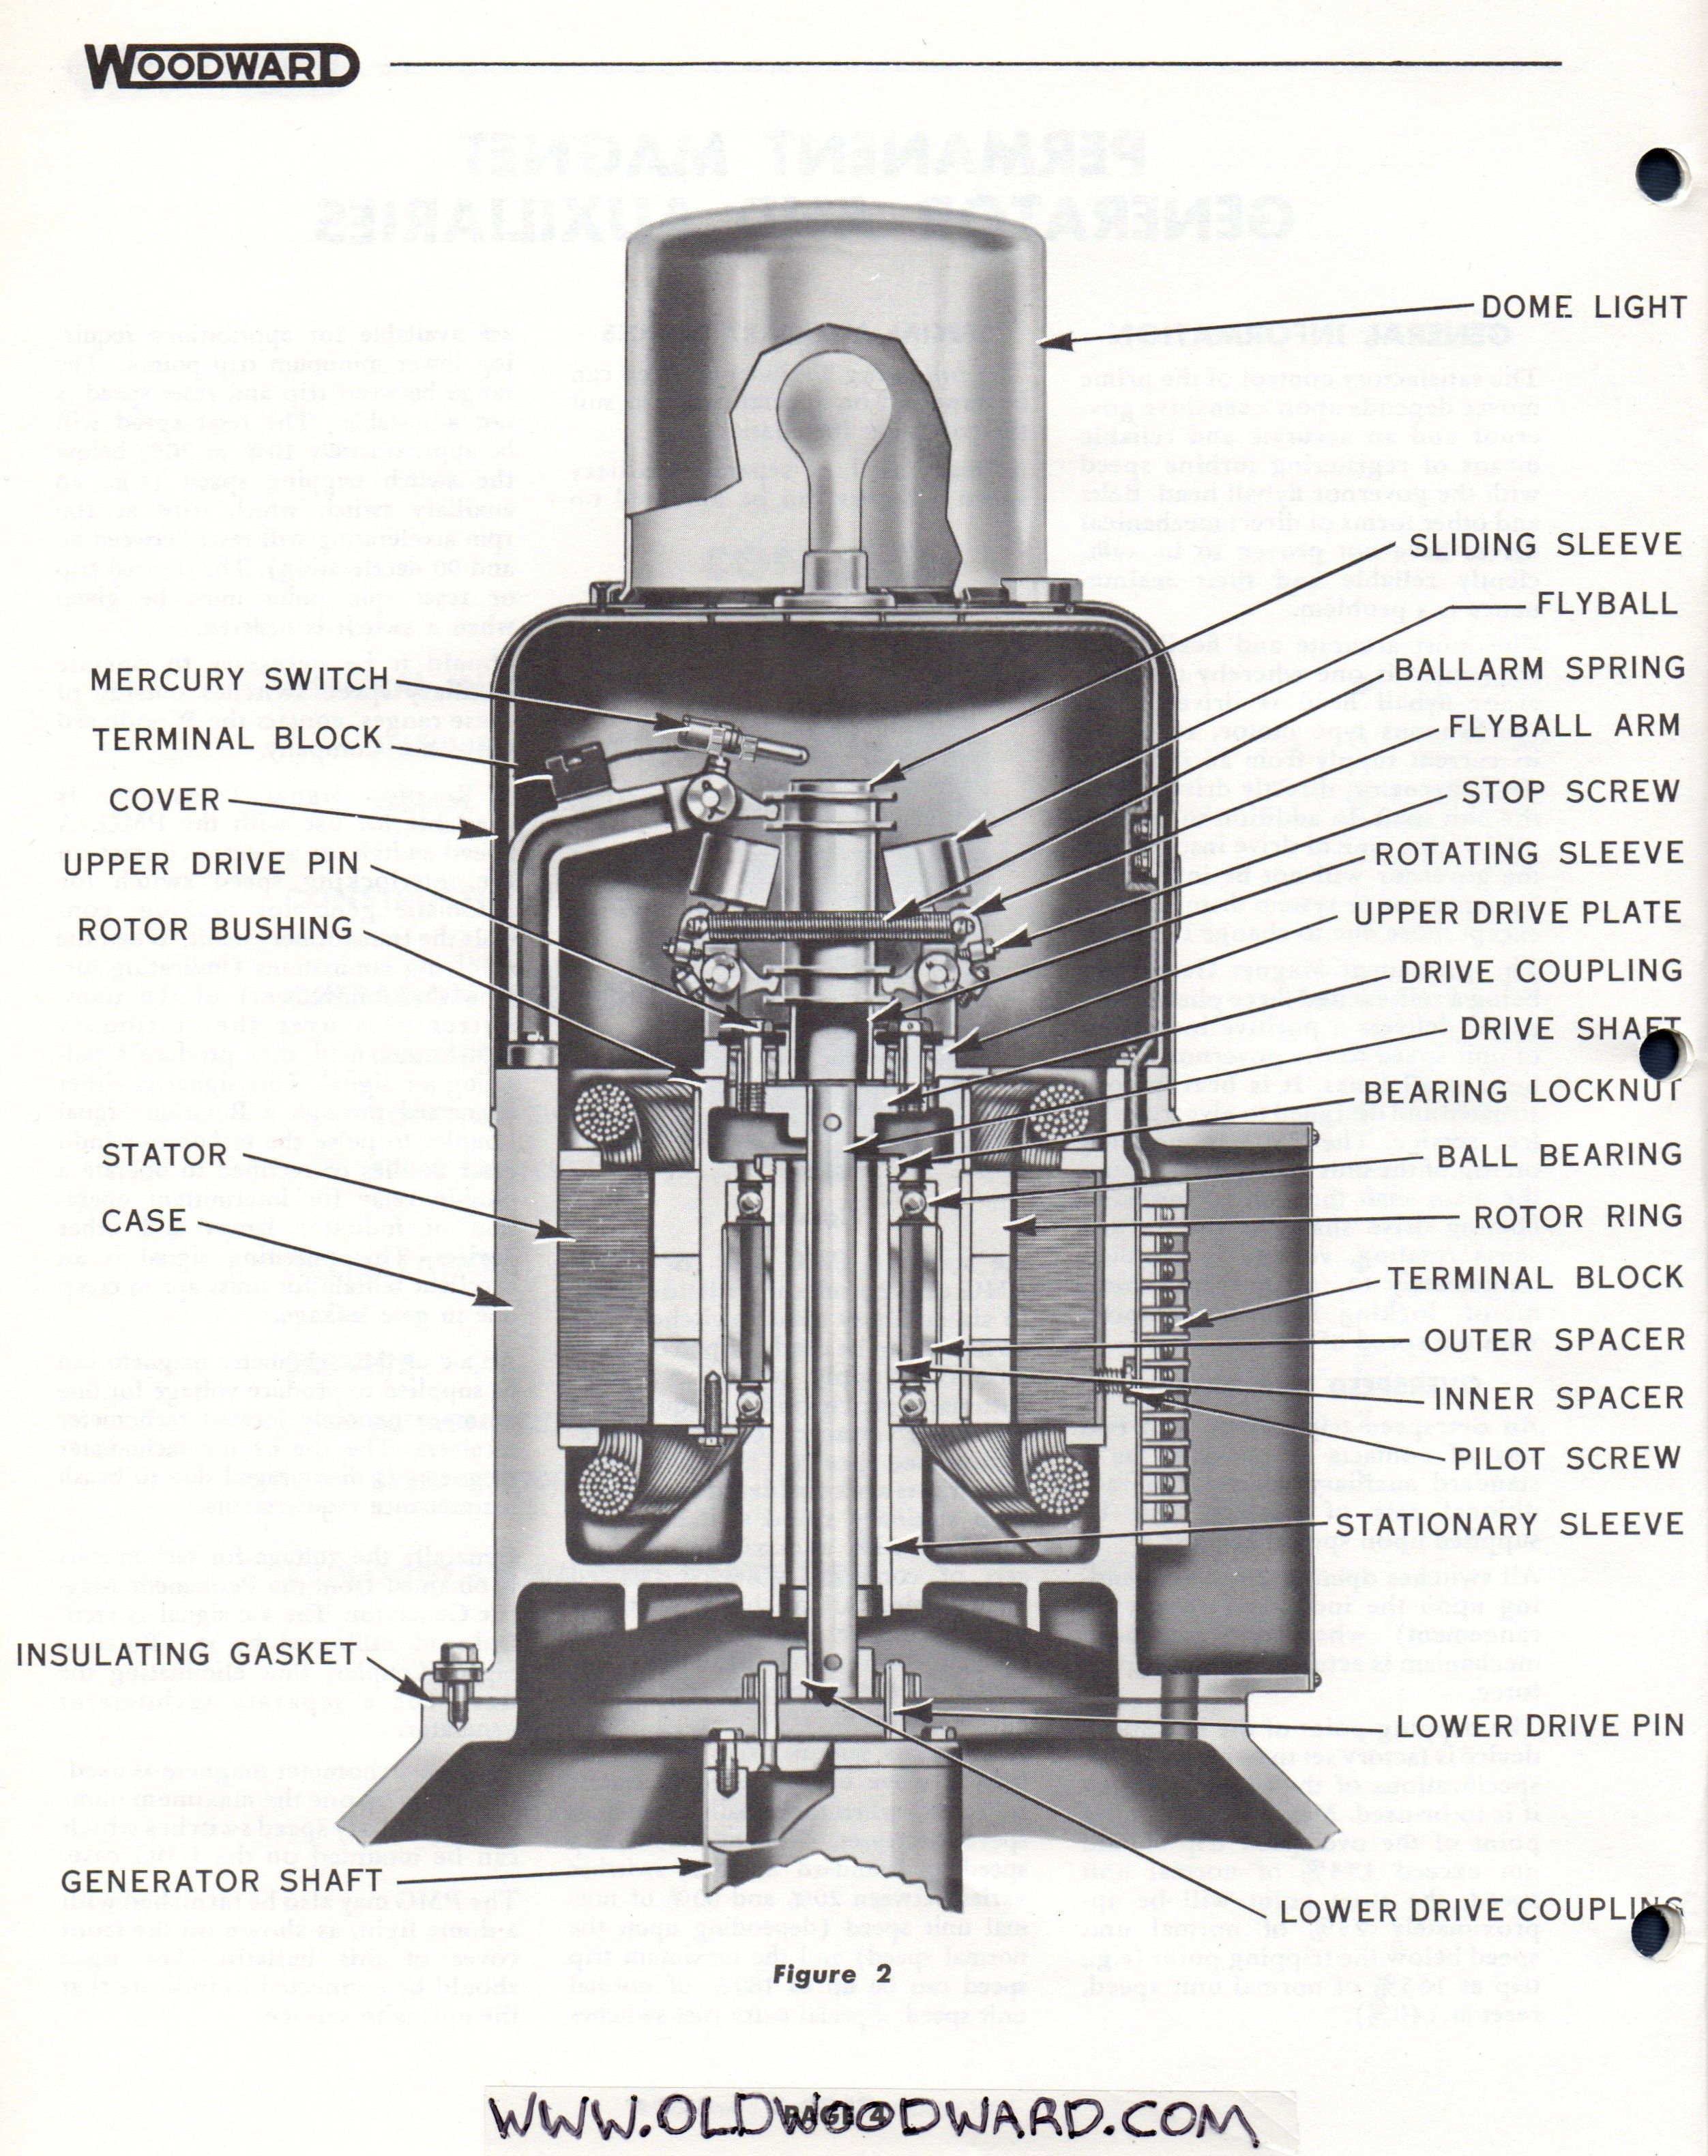 woodward governor company s permanent magnet generator unit for large hydro electric turbine units from woodward manual 11002k page 4  [ 2504 x 3160 Pixel ]